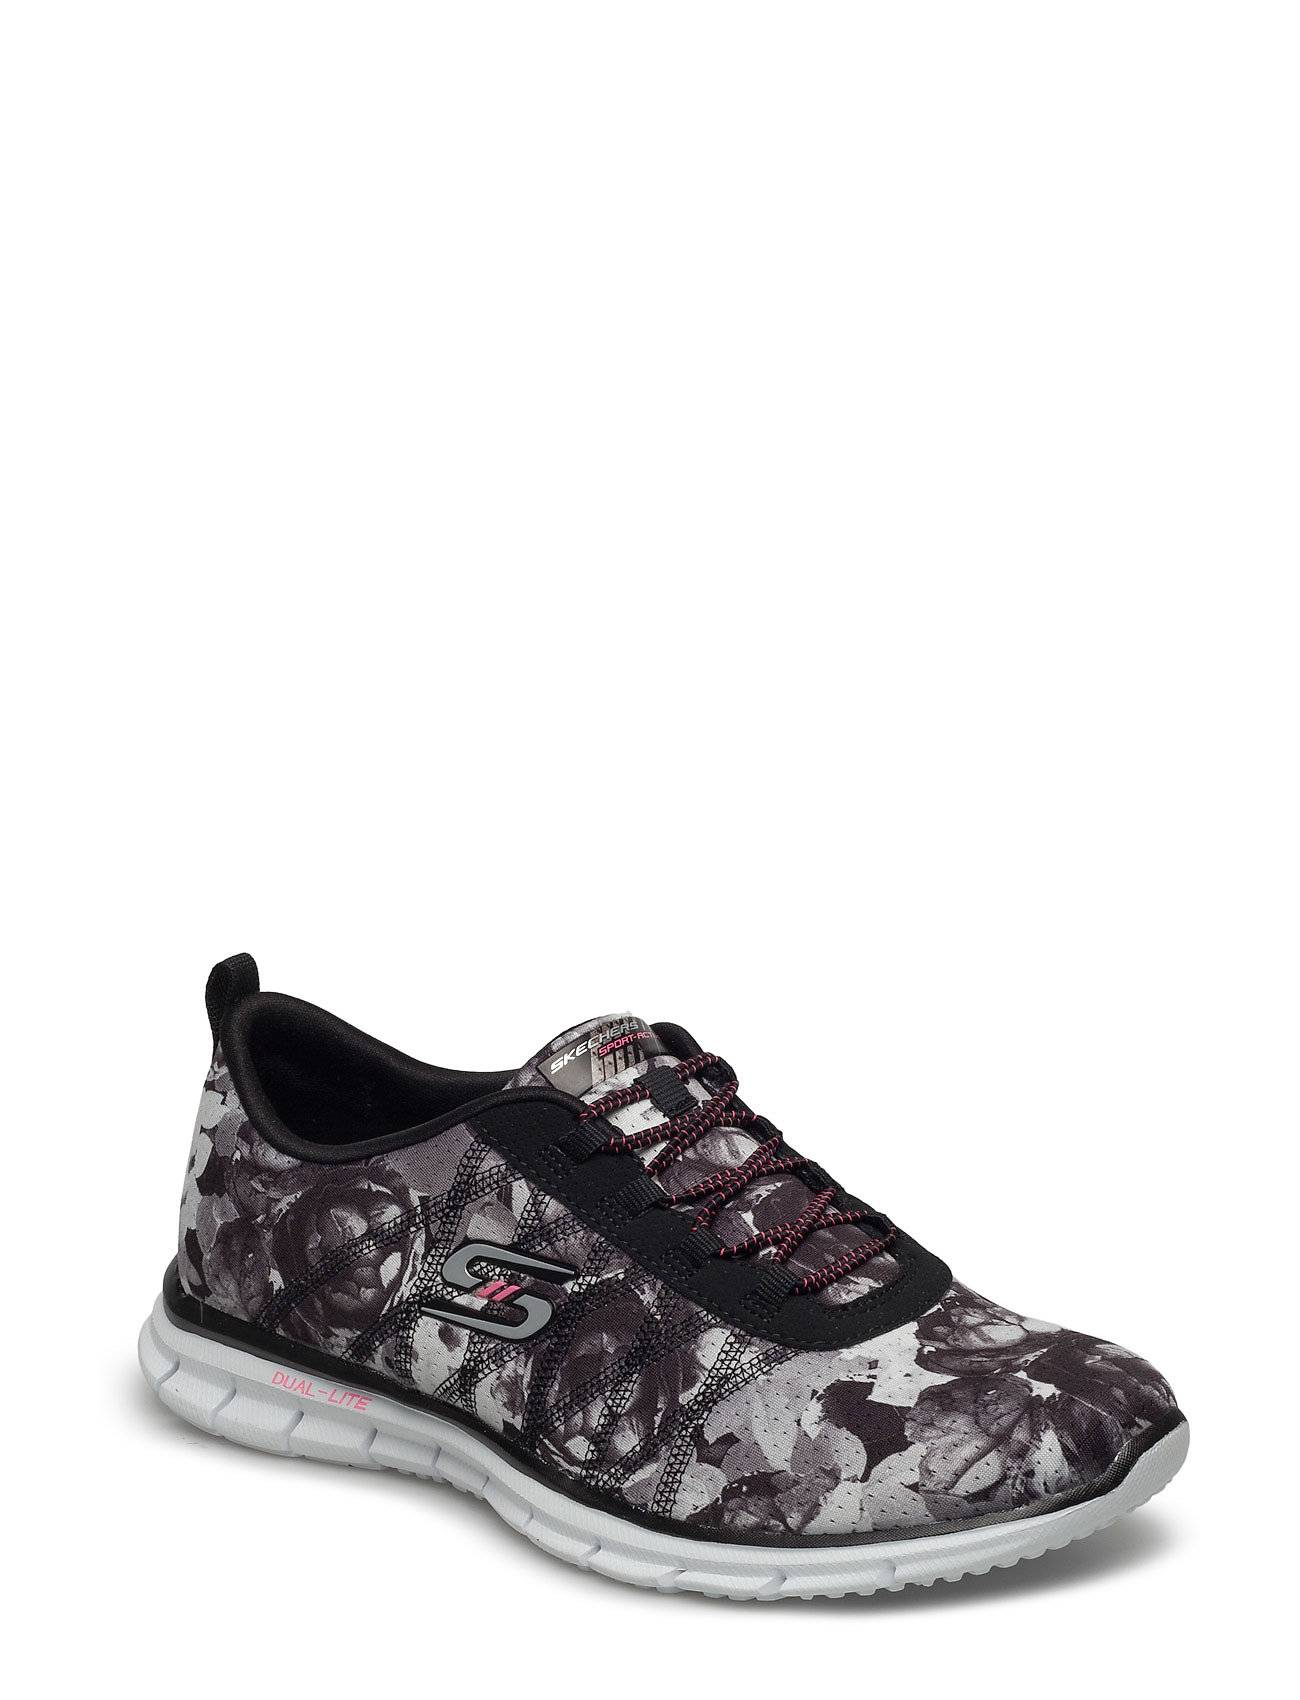 Skechers Womans Sport Gilder - Posies